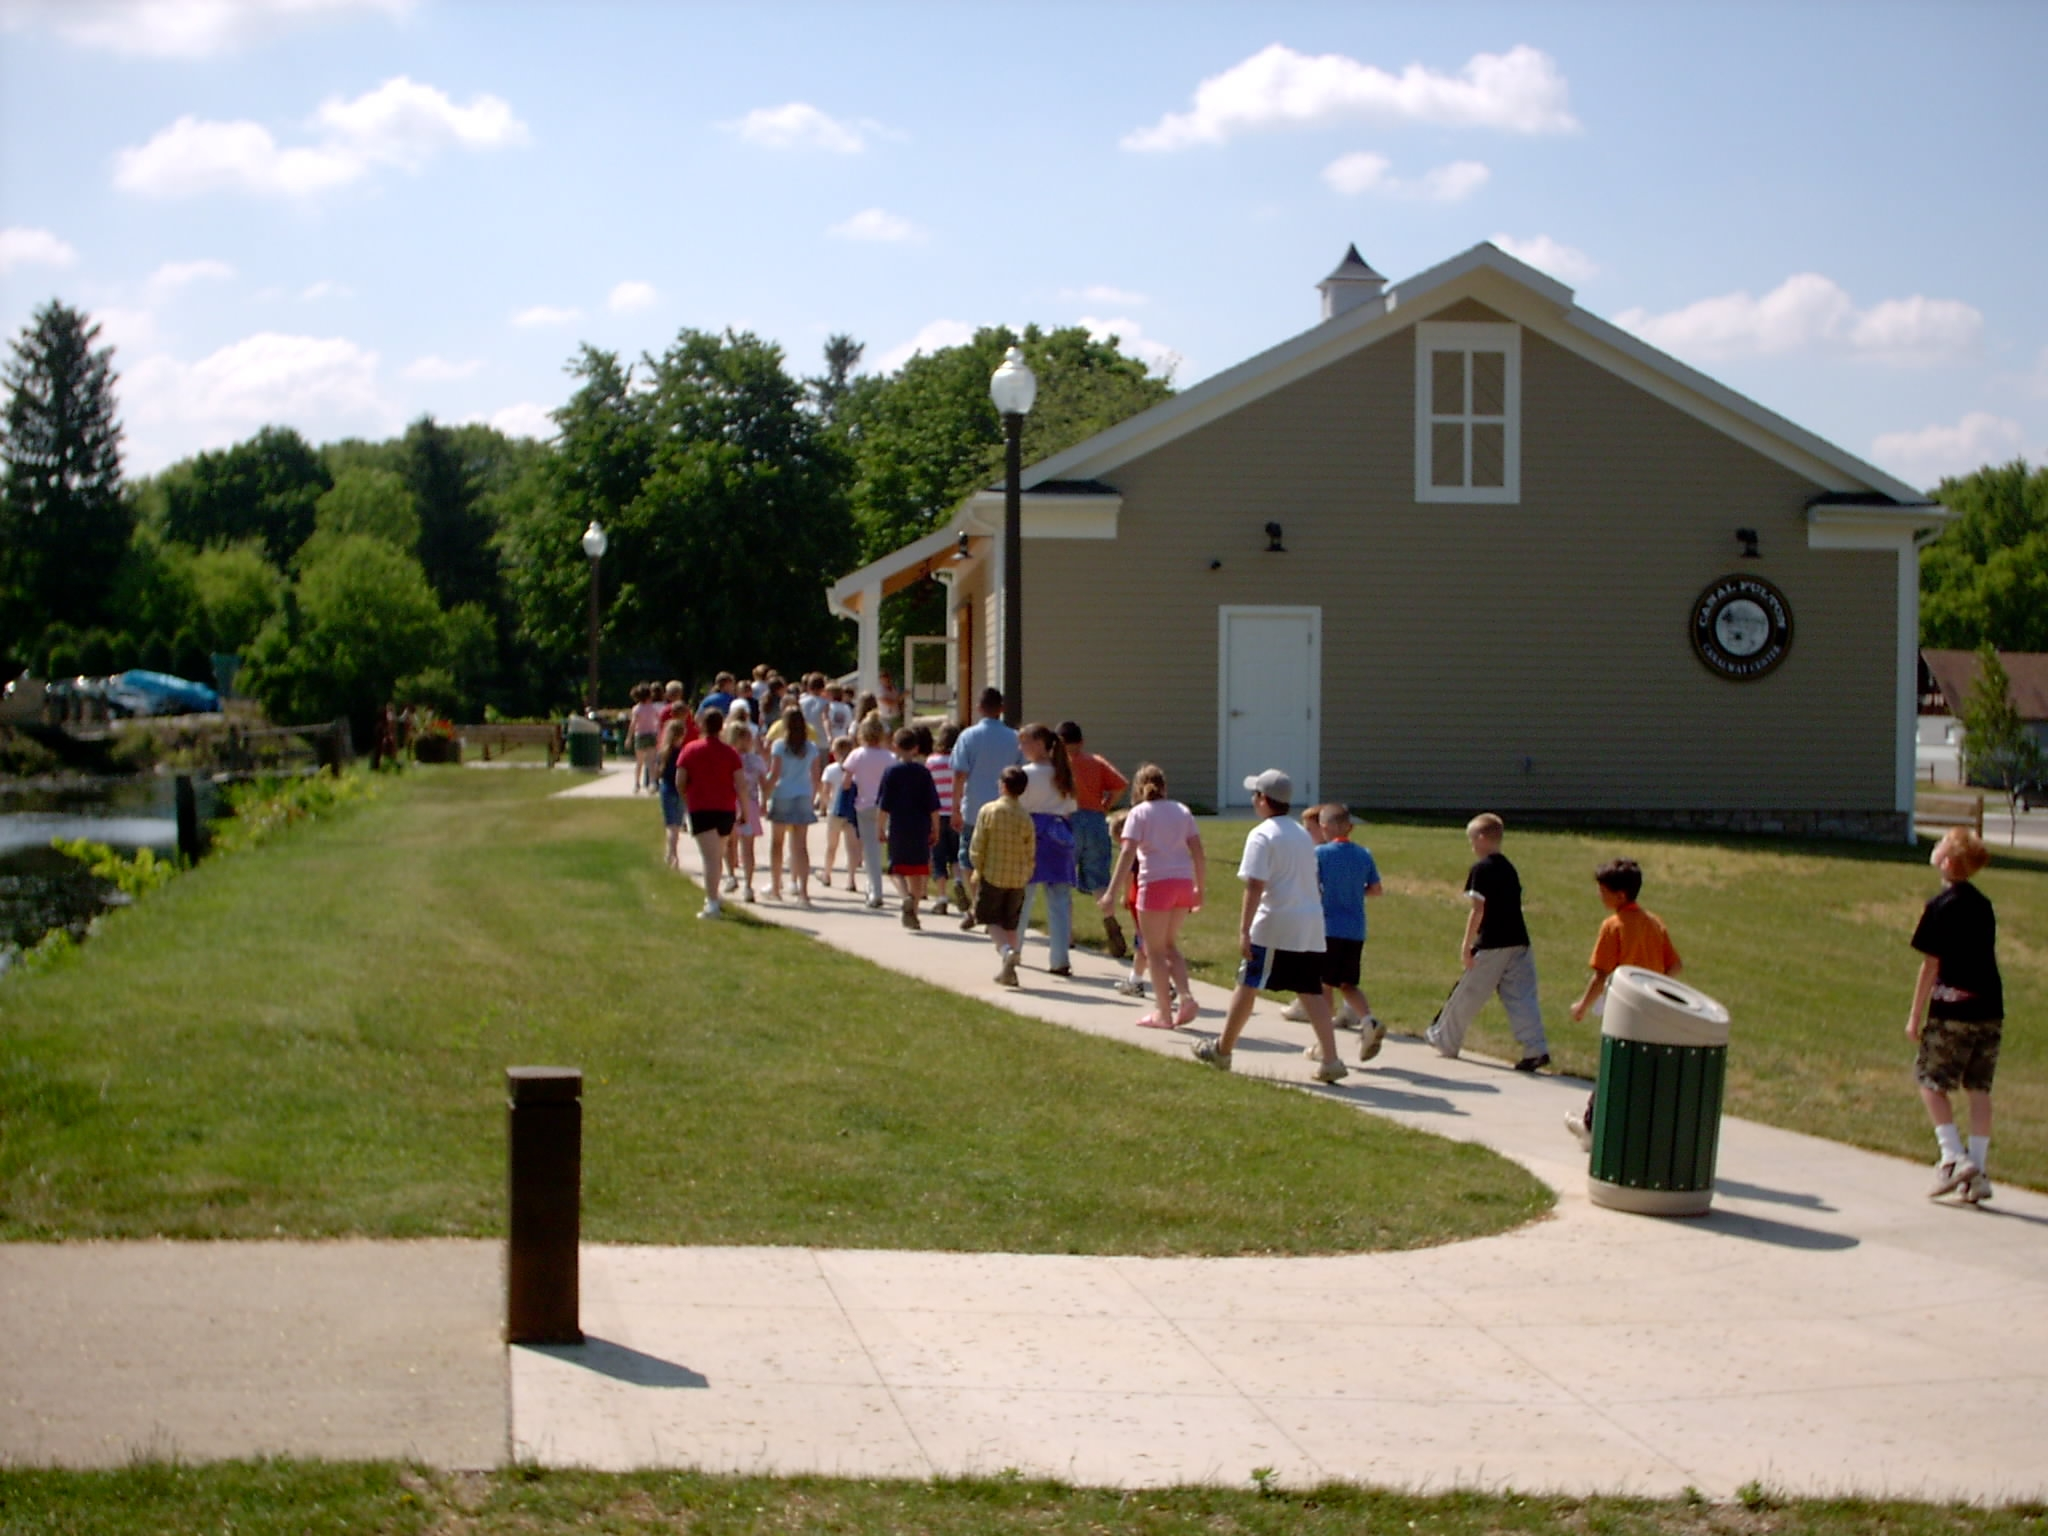 After their tour of the Old Canal Days Museum and the St. Helena II, students return to the Canalway Center for a 27 minute documentary video that tells more about the life and history of the Ohio & Erie Canal.